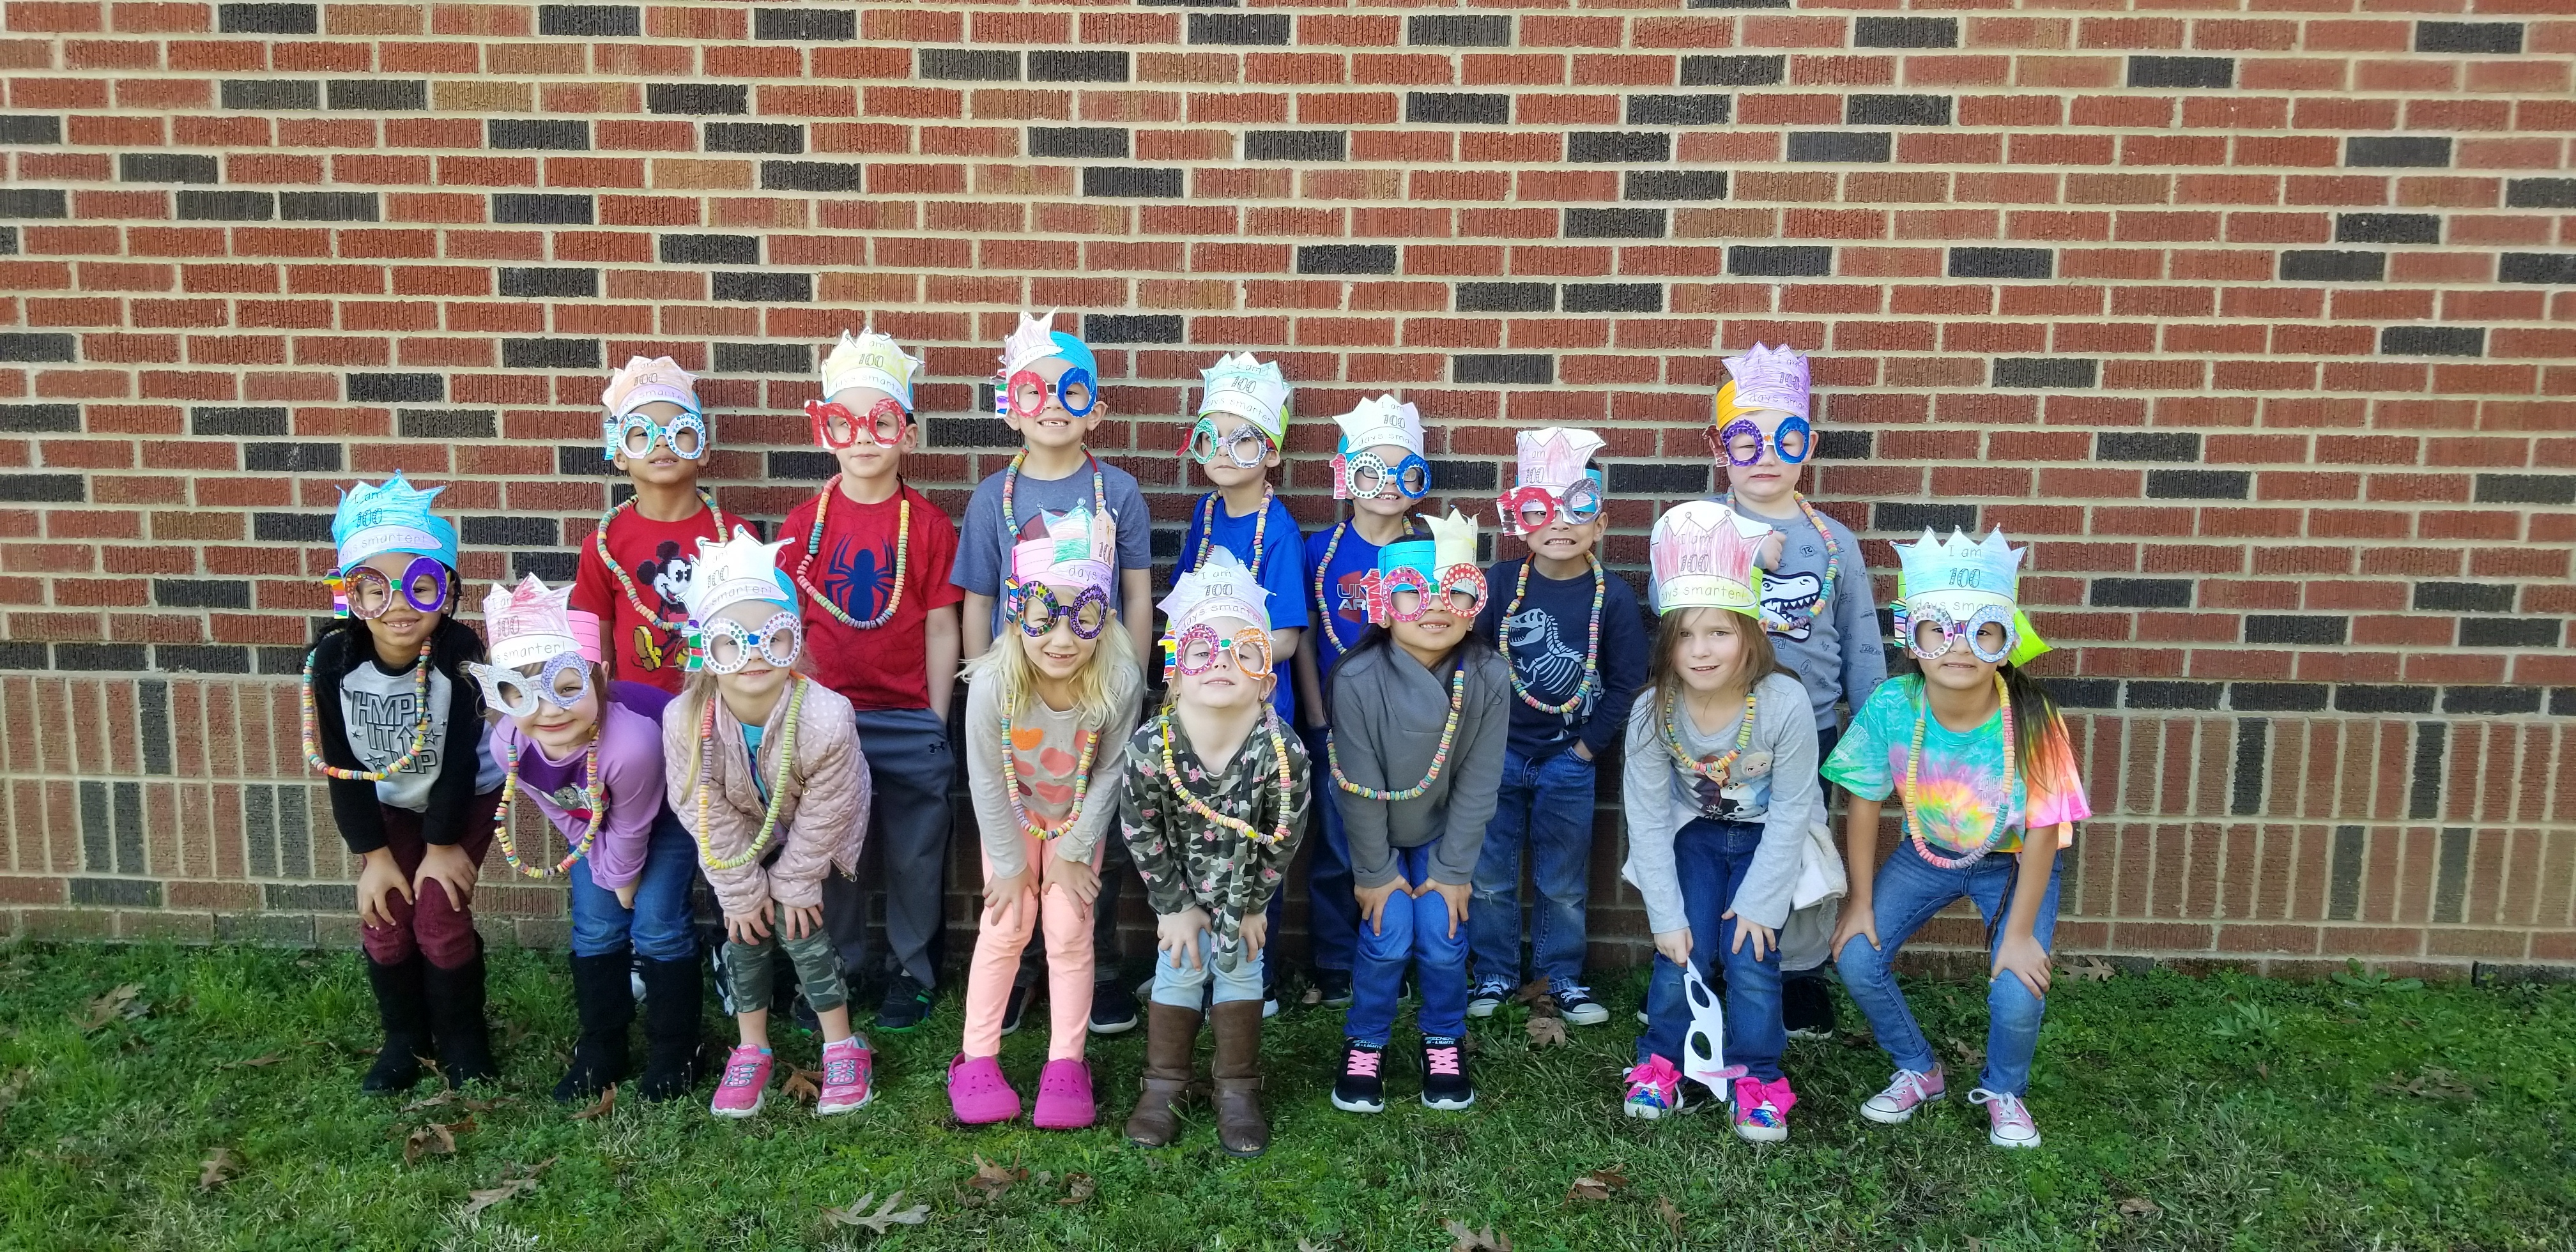 Carlisle ISD students celebrate the 100th day of school